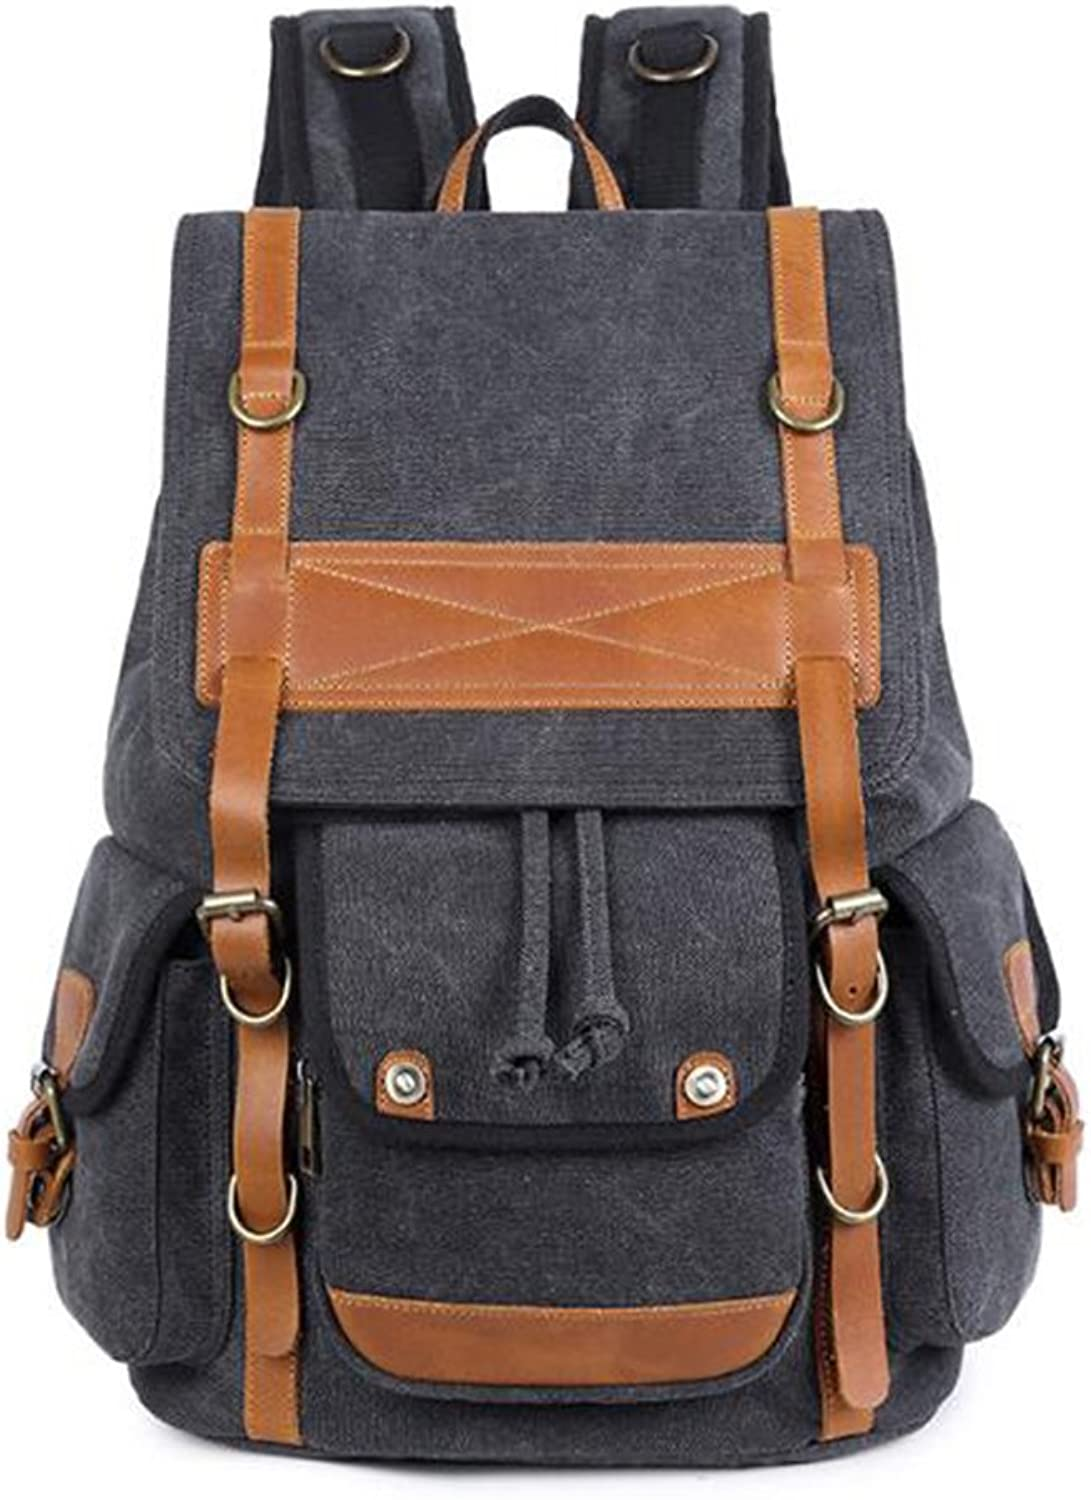 KIMSAI Canvas Backpack, Vintage Canvas Leather Rucksack Backpacks For Women Men Travel Hiking Camping School,Black